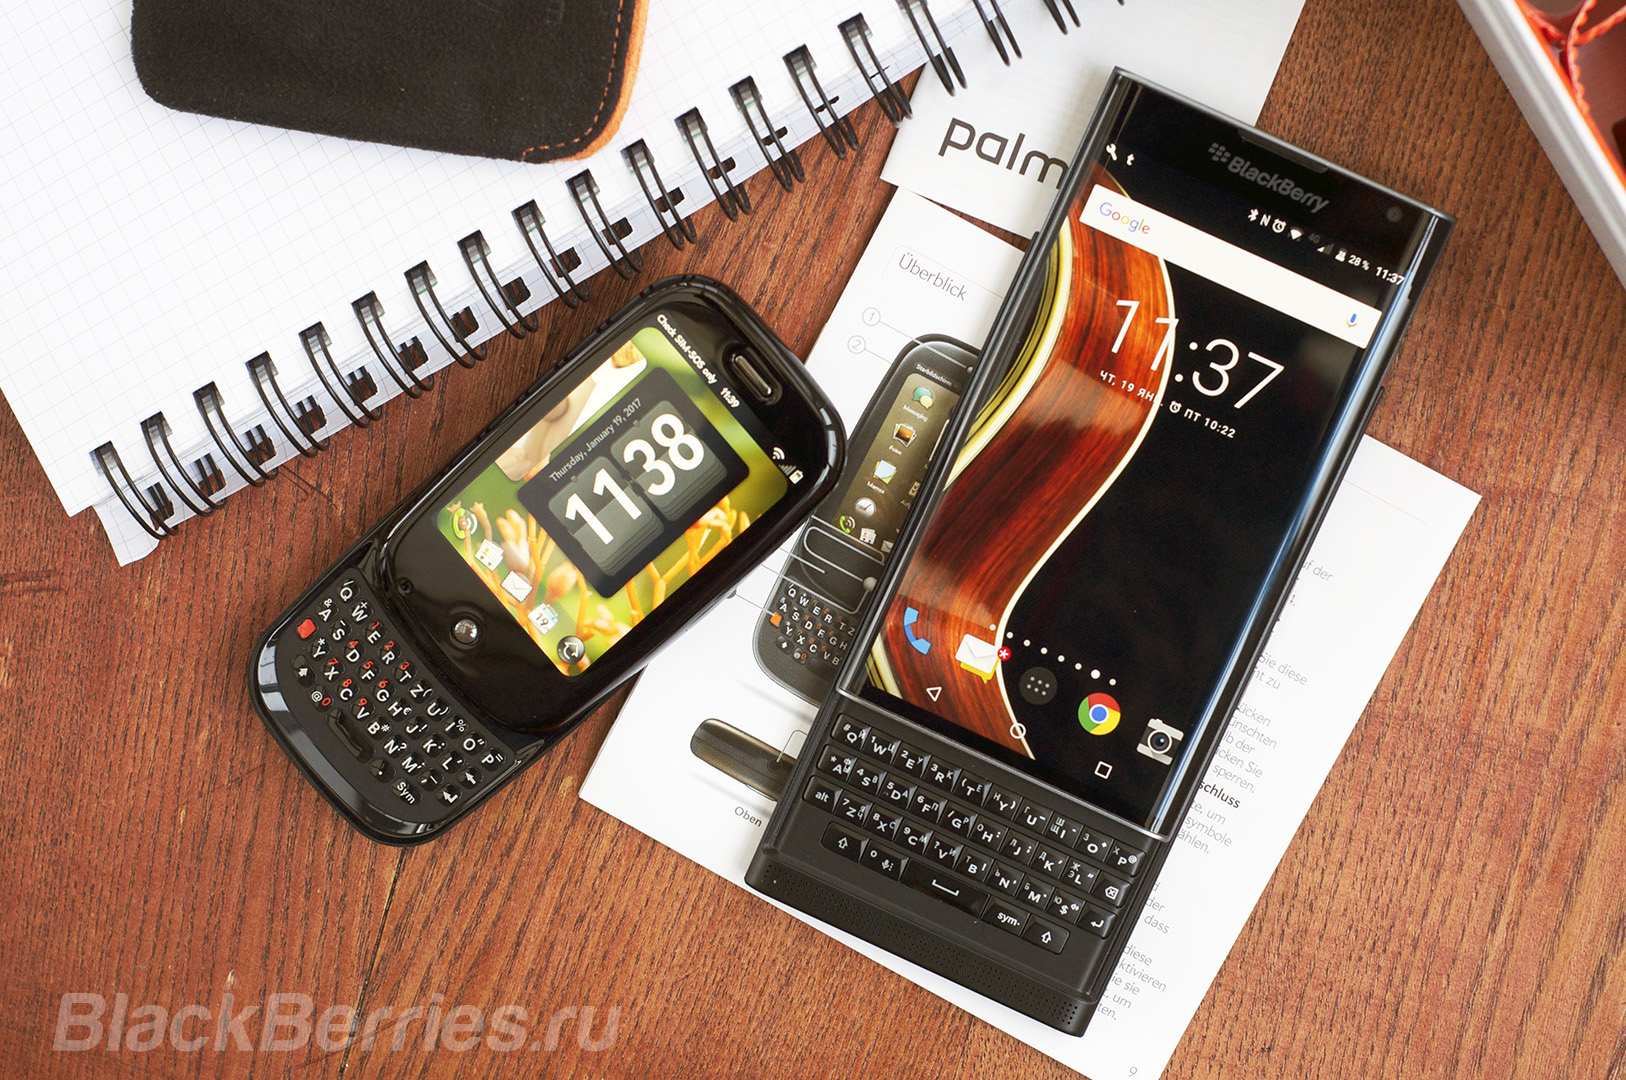 PALM-BlackBerry-TCL-05